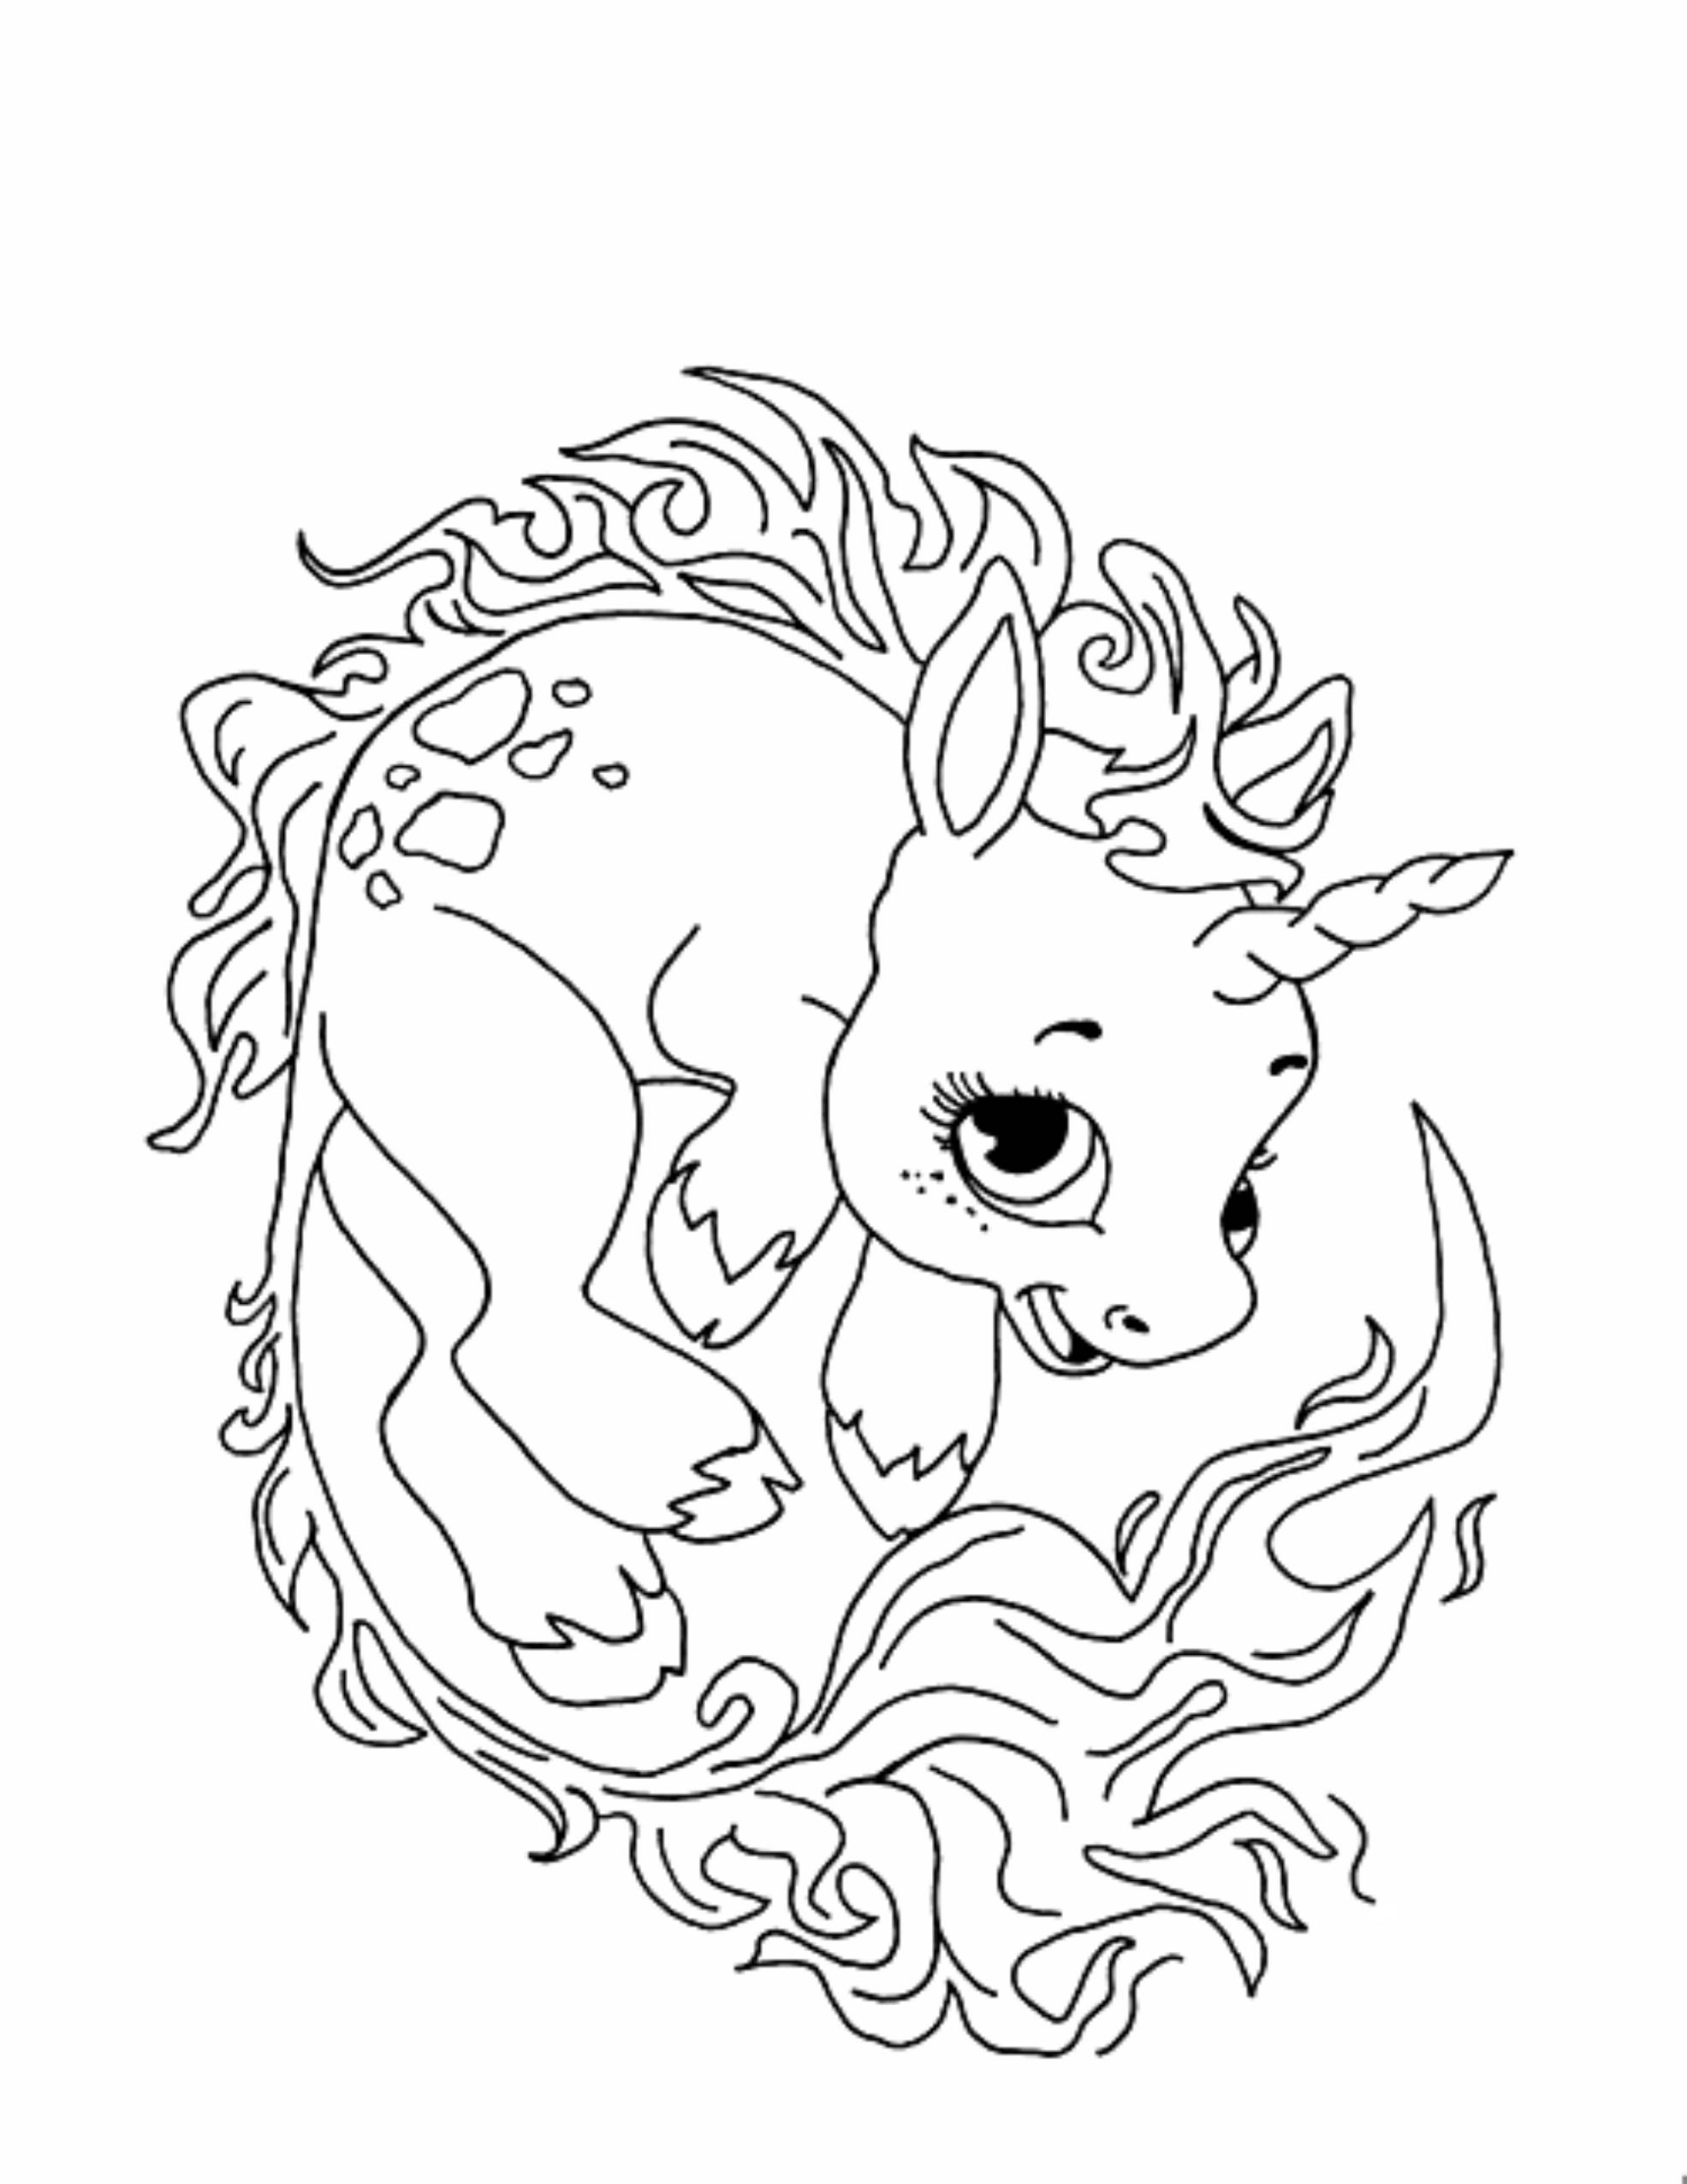 Printable Unicorn Coloring Pages For Kids 5 Voteforverde Com Coloring Home